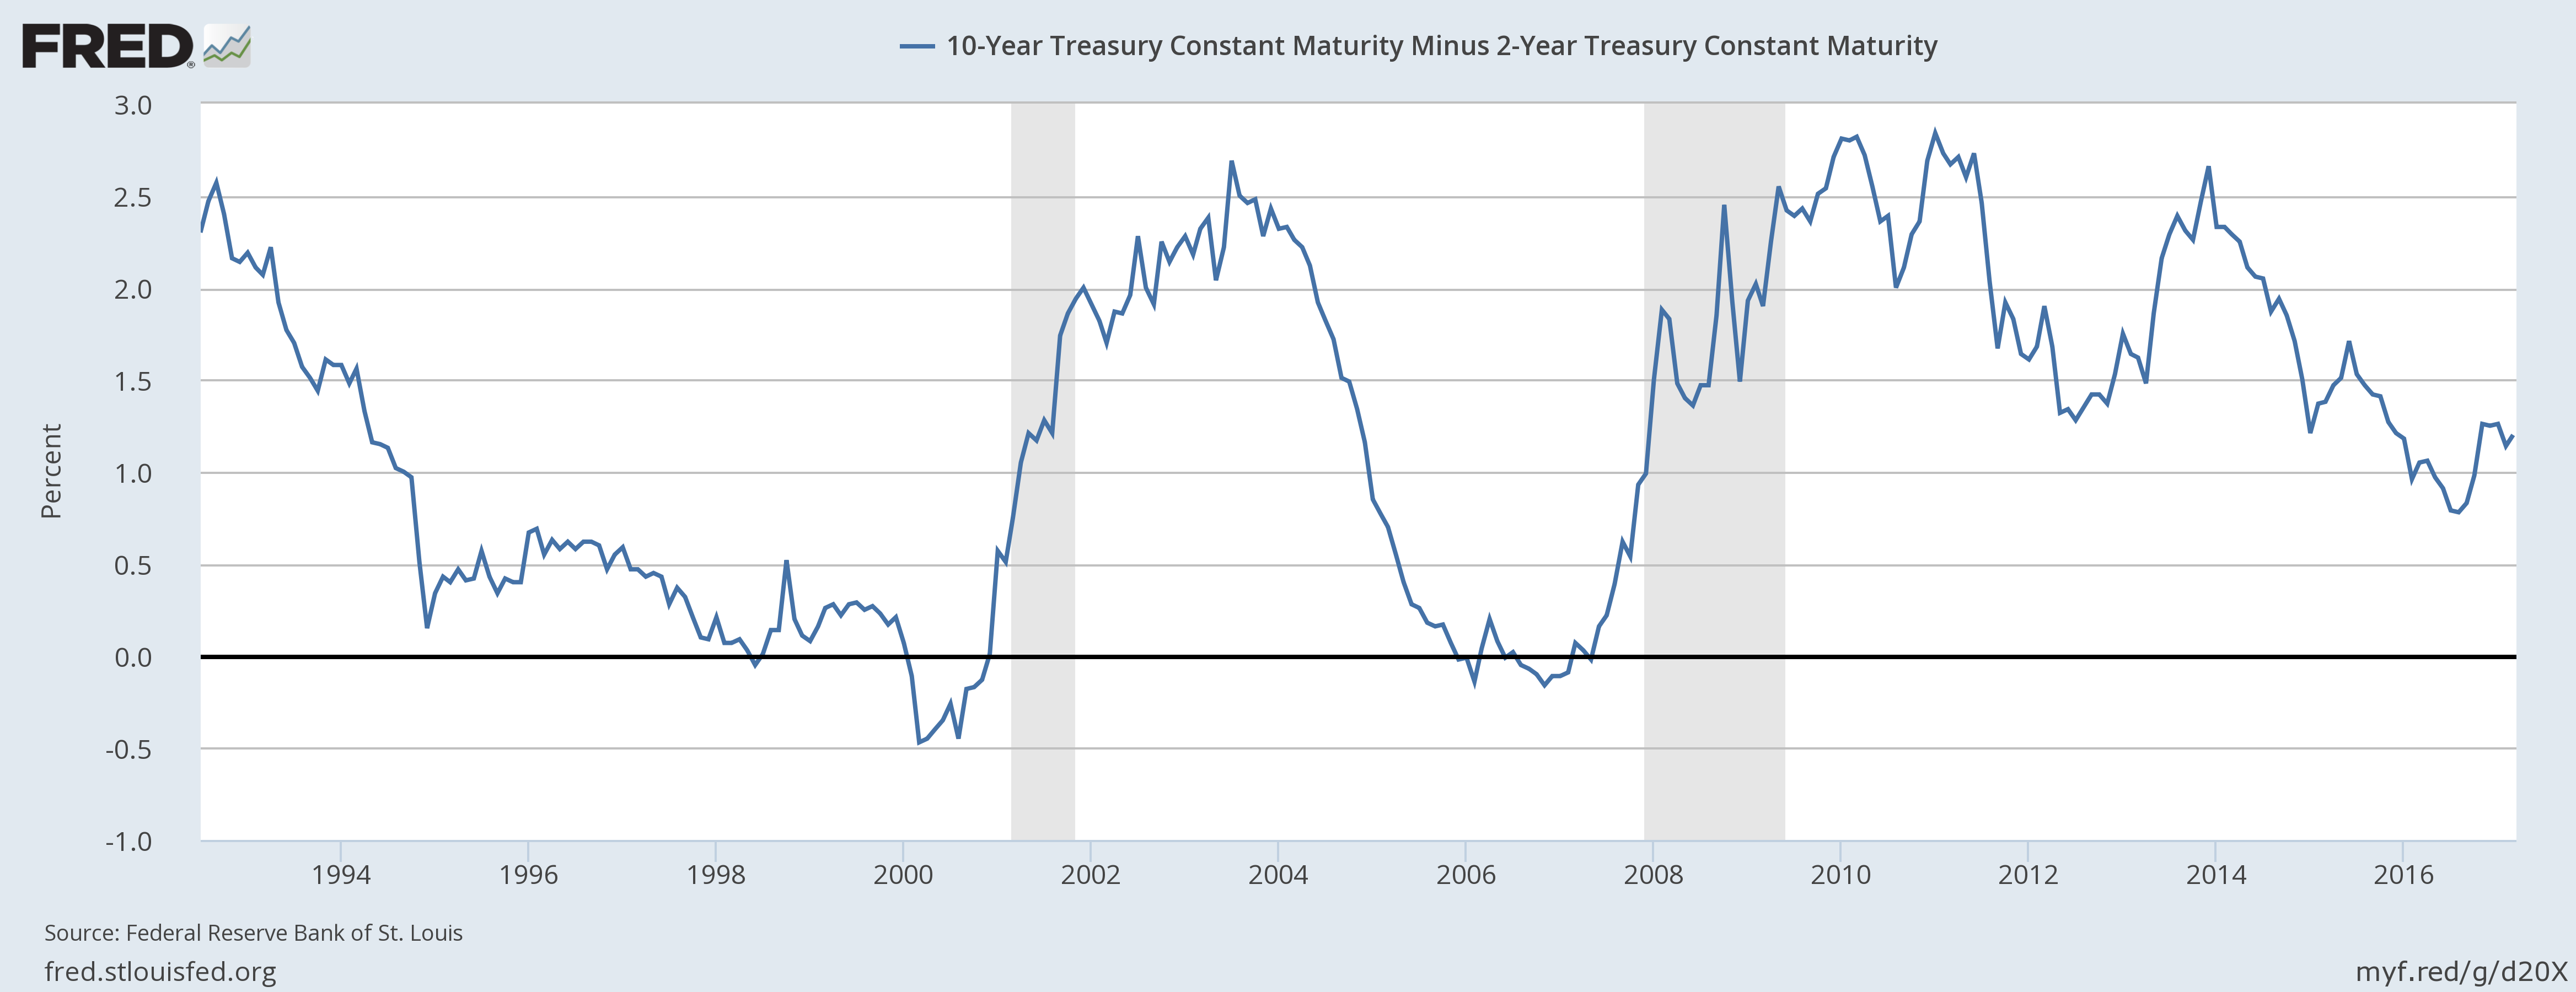 10-Year Treasury Constant Maturity, 1993 - 2016